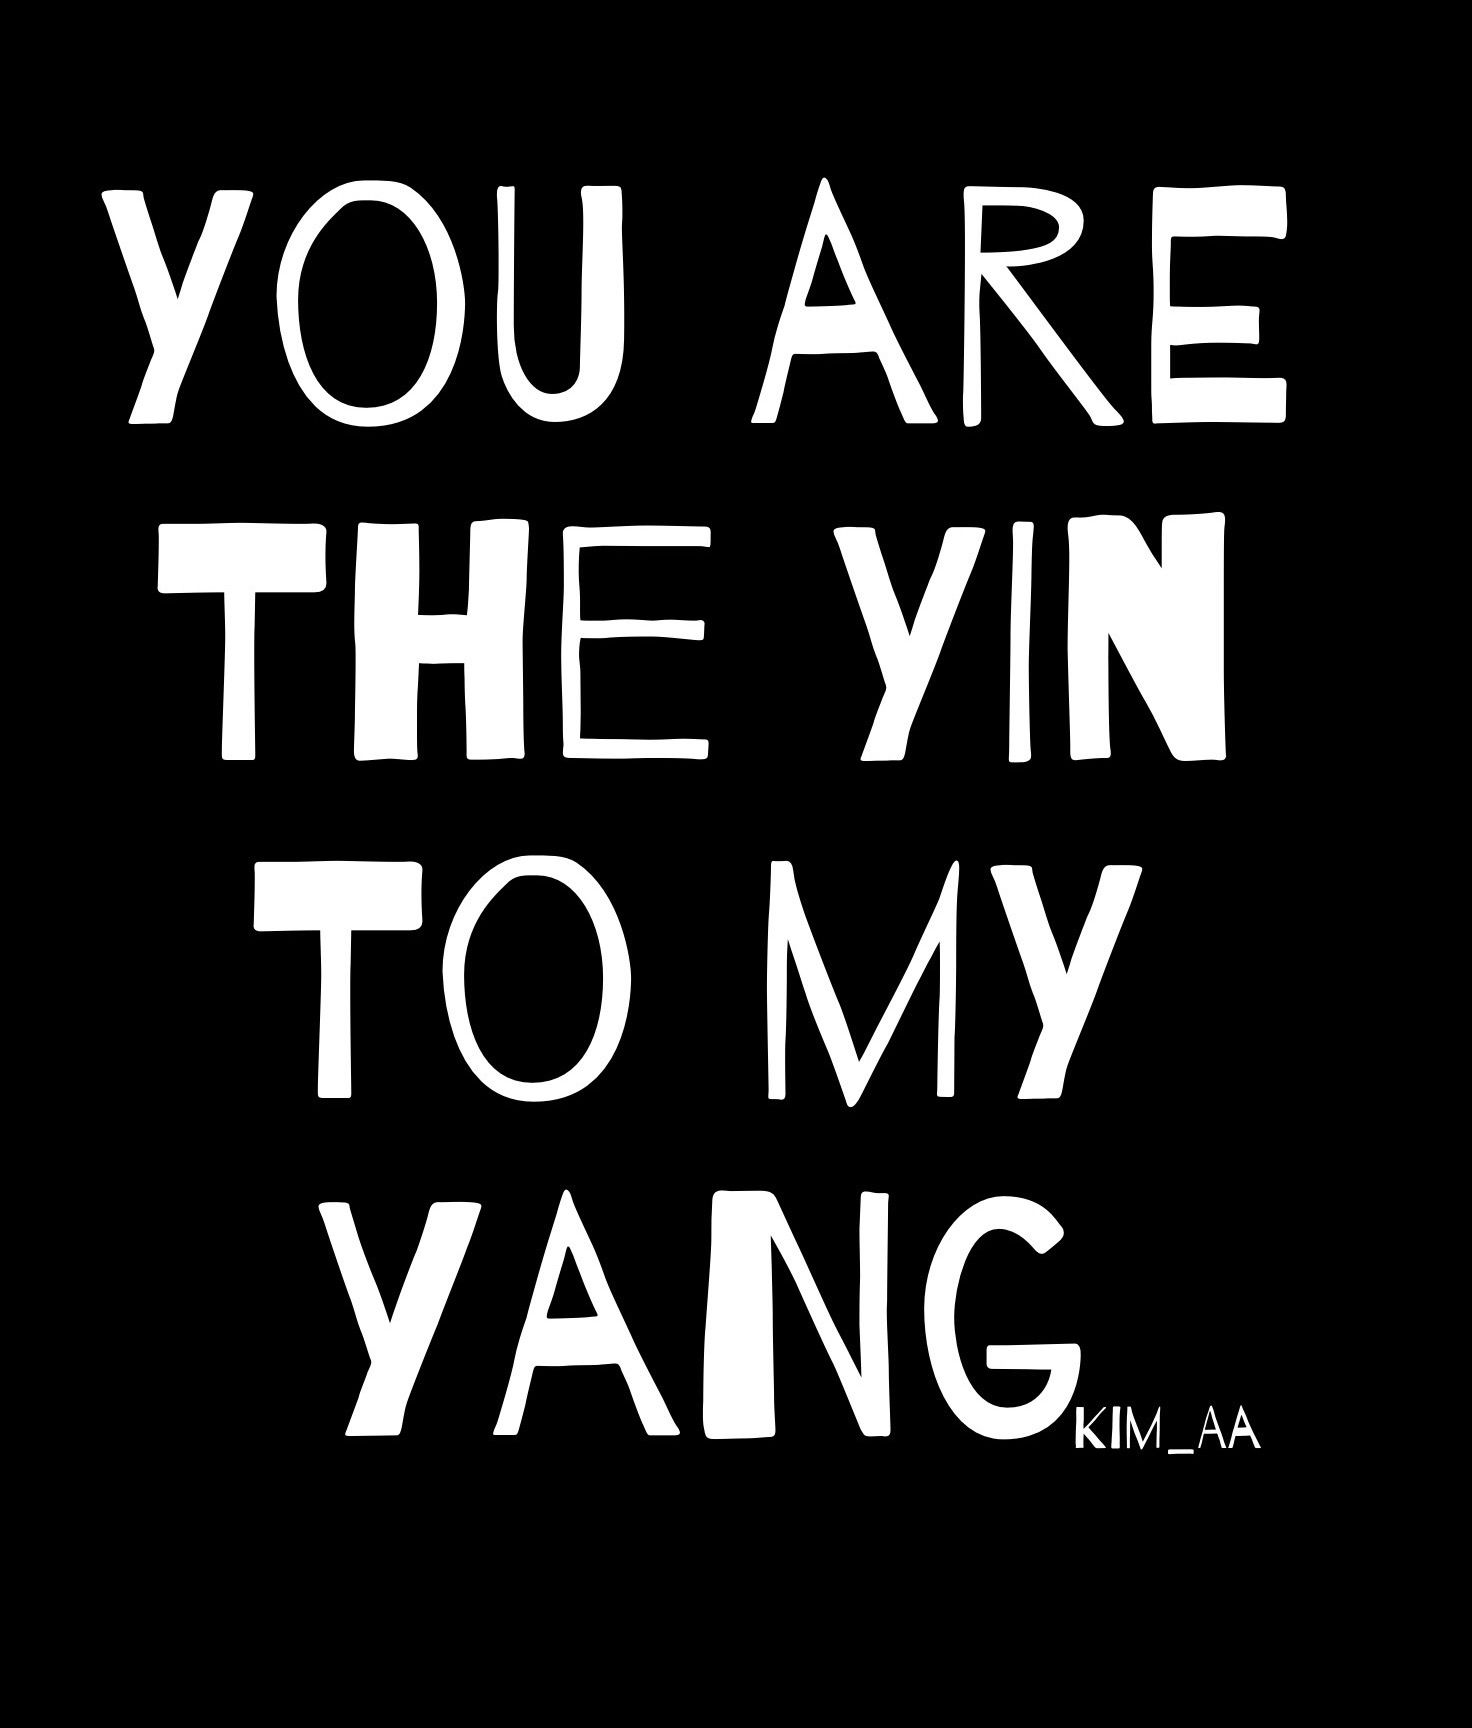 You Are The Yin To My Yang Poetry Quotes Kimaa Kimaa